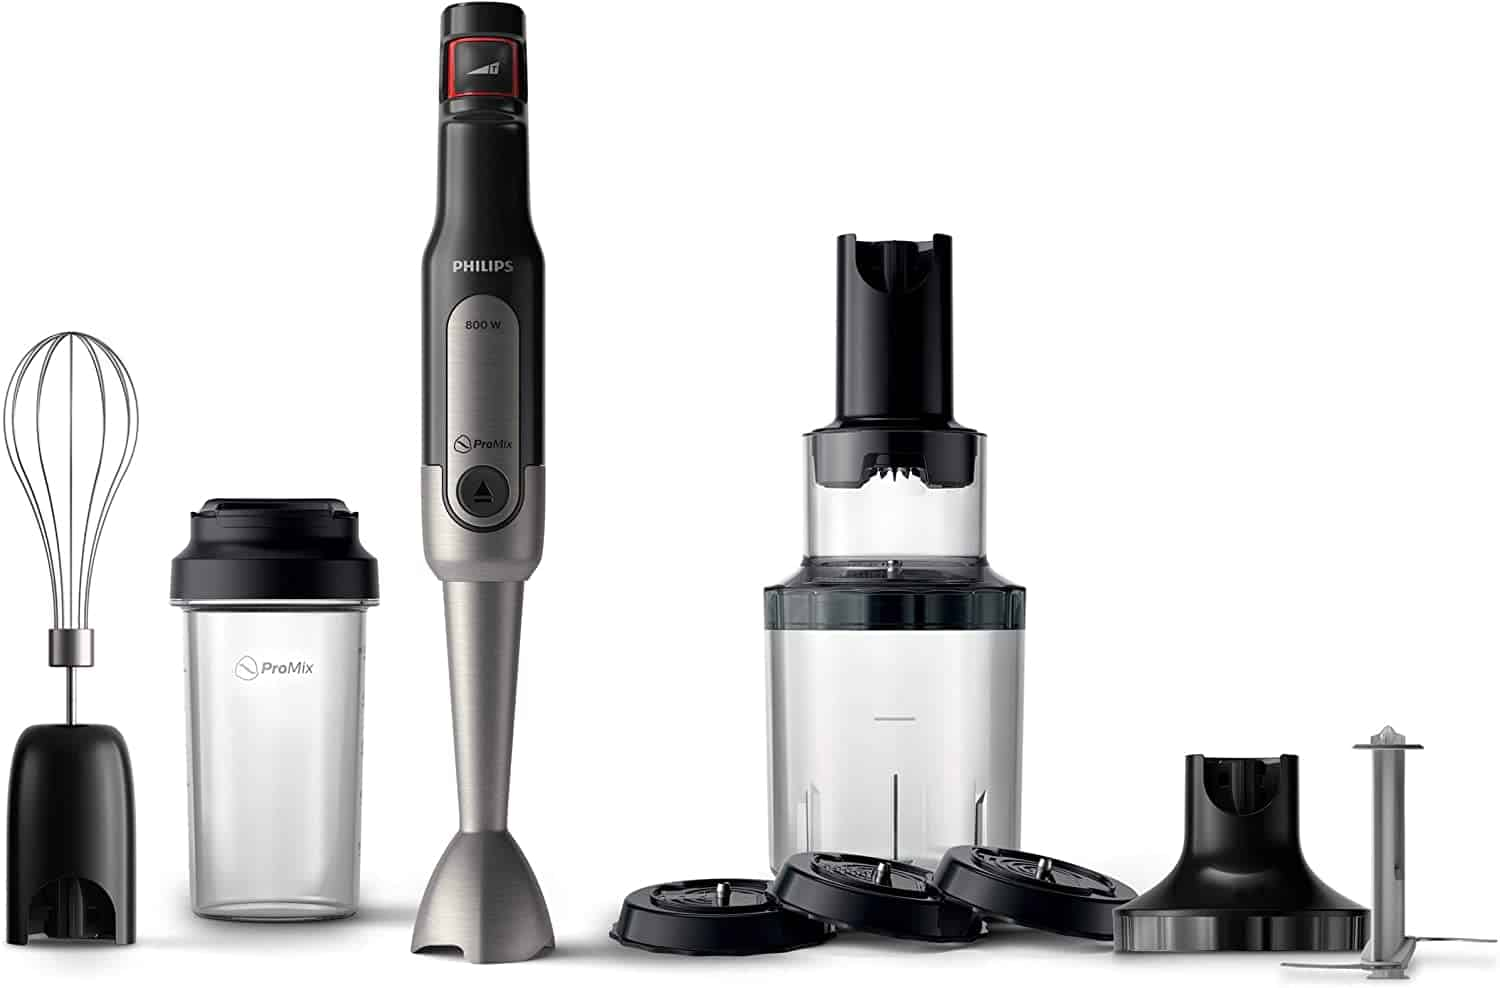 Philips Viva Collection ProMix Hand Blender is the 10 Best Handheld Immersion Blender in Singapore, this hand blender comes with a variety of accessories helps you create endless healthy snack and meal options, best immersion blender consumer reports, all-clad immersion blender